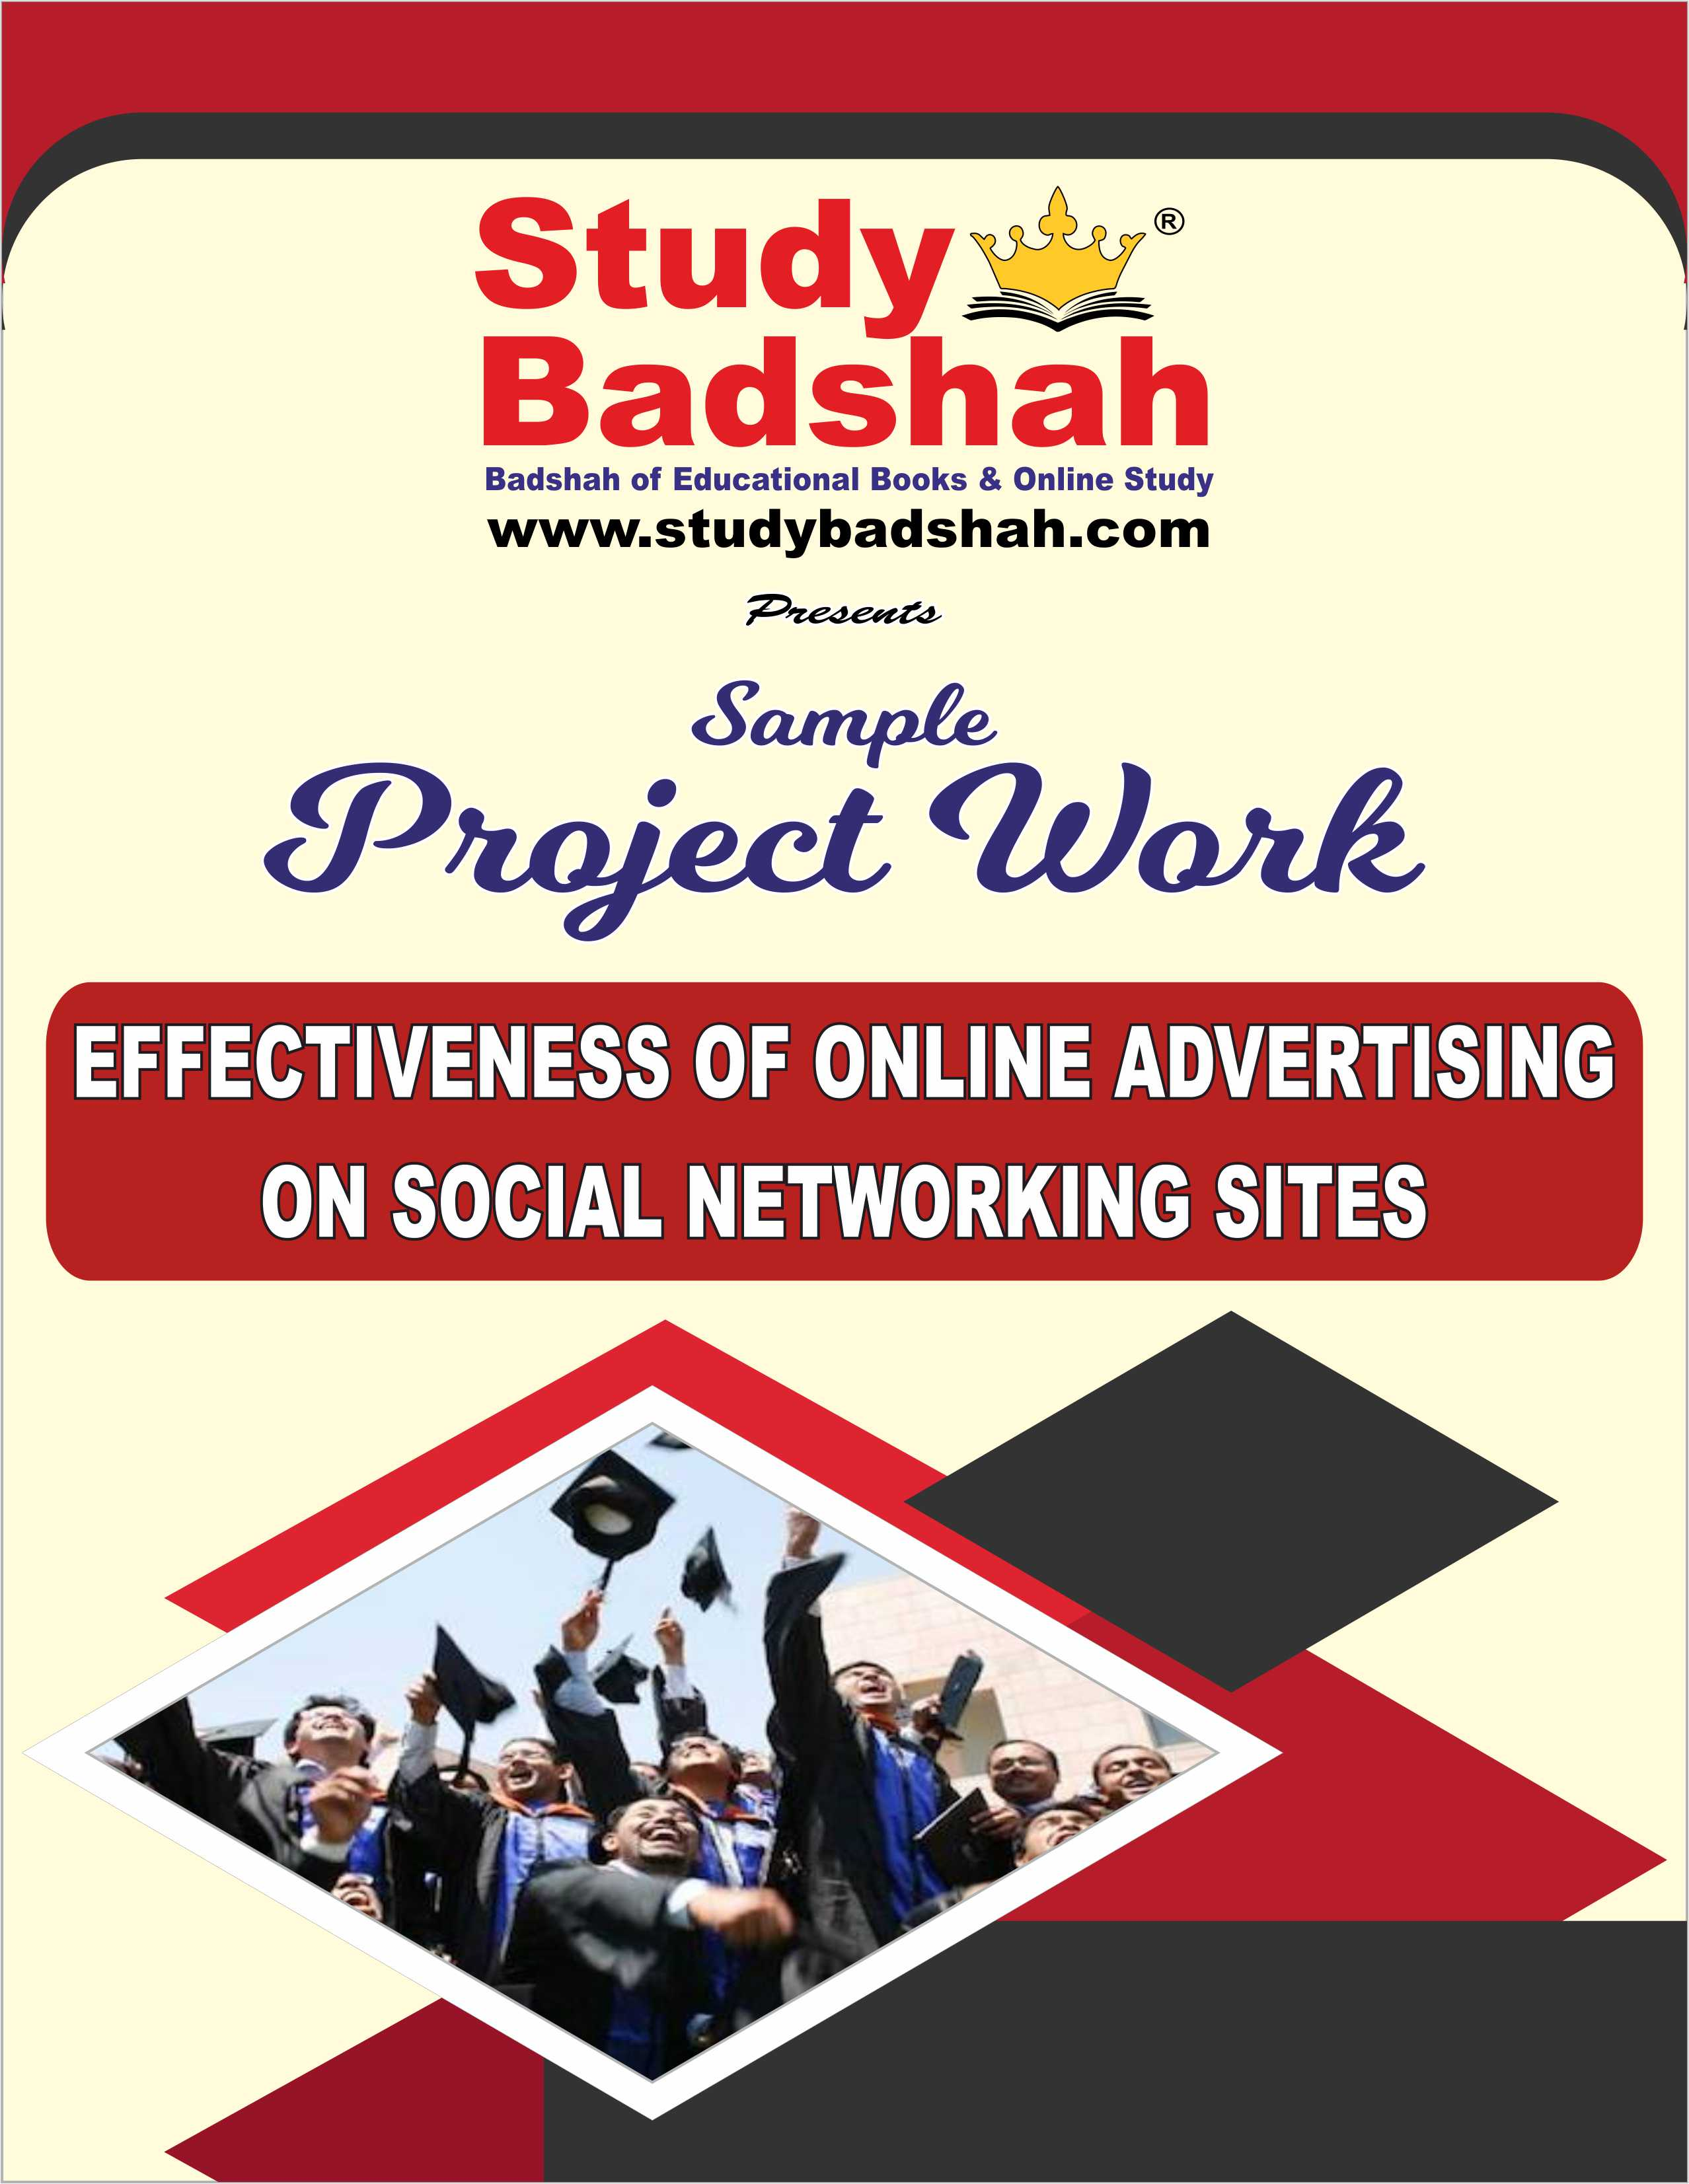 EFFECTIVENESS OF ONLINE ADVERTISING ON SOCIAL NETWORKING SITES.pdf